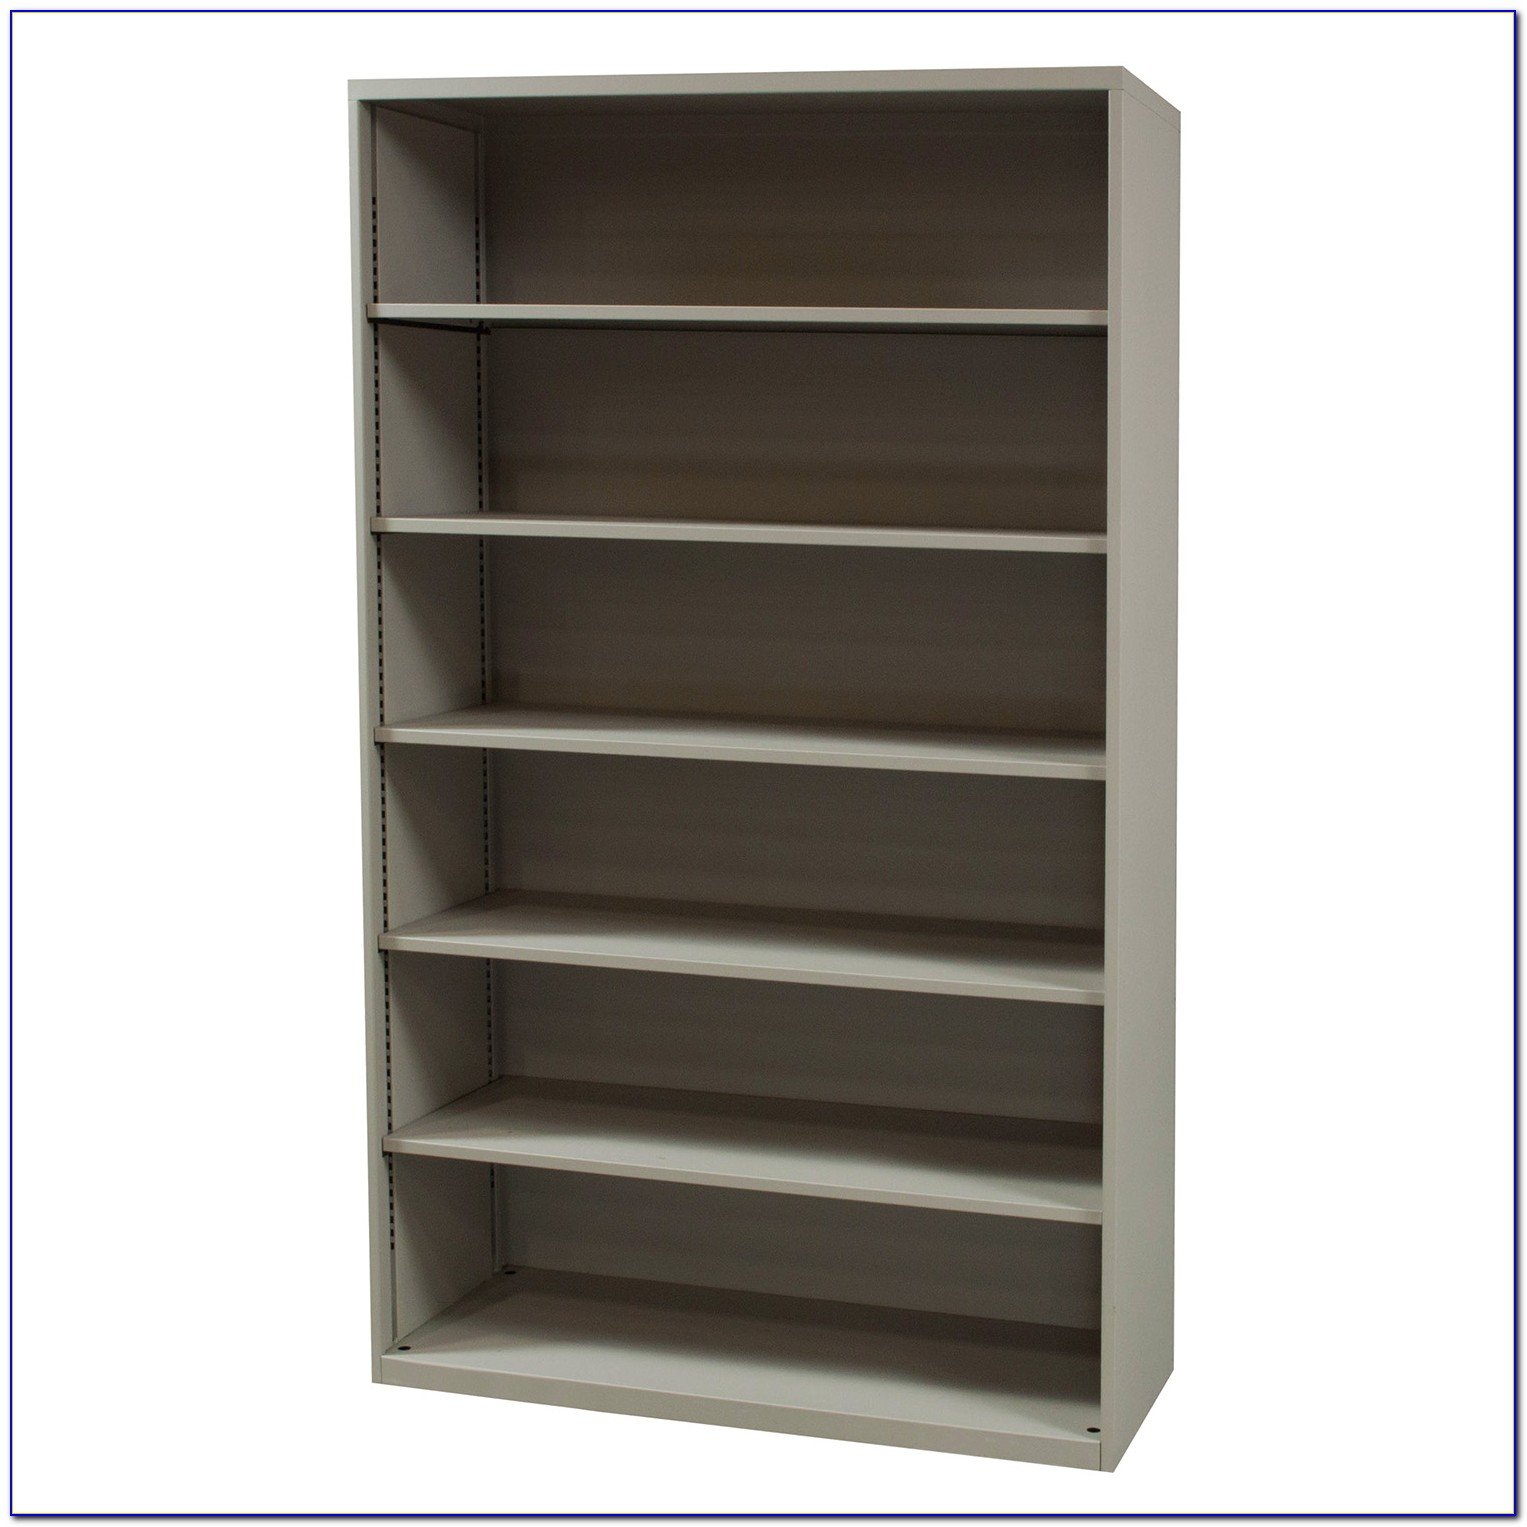 Ikea Six Shelf Bookcase